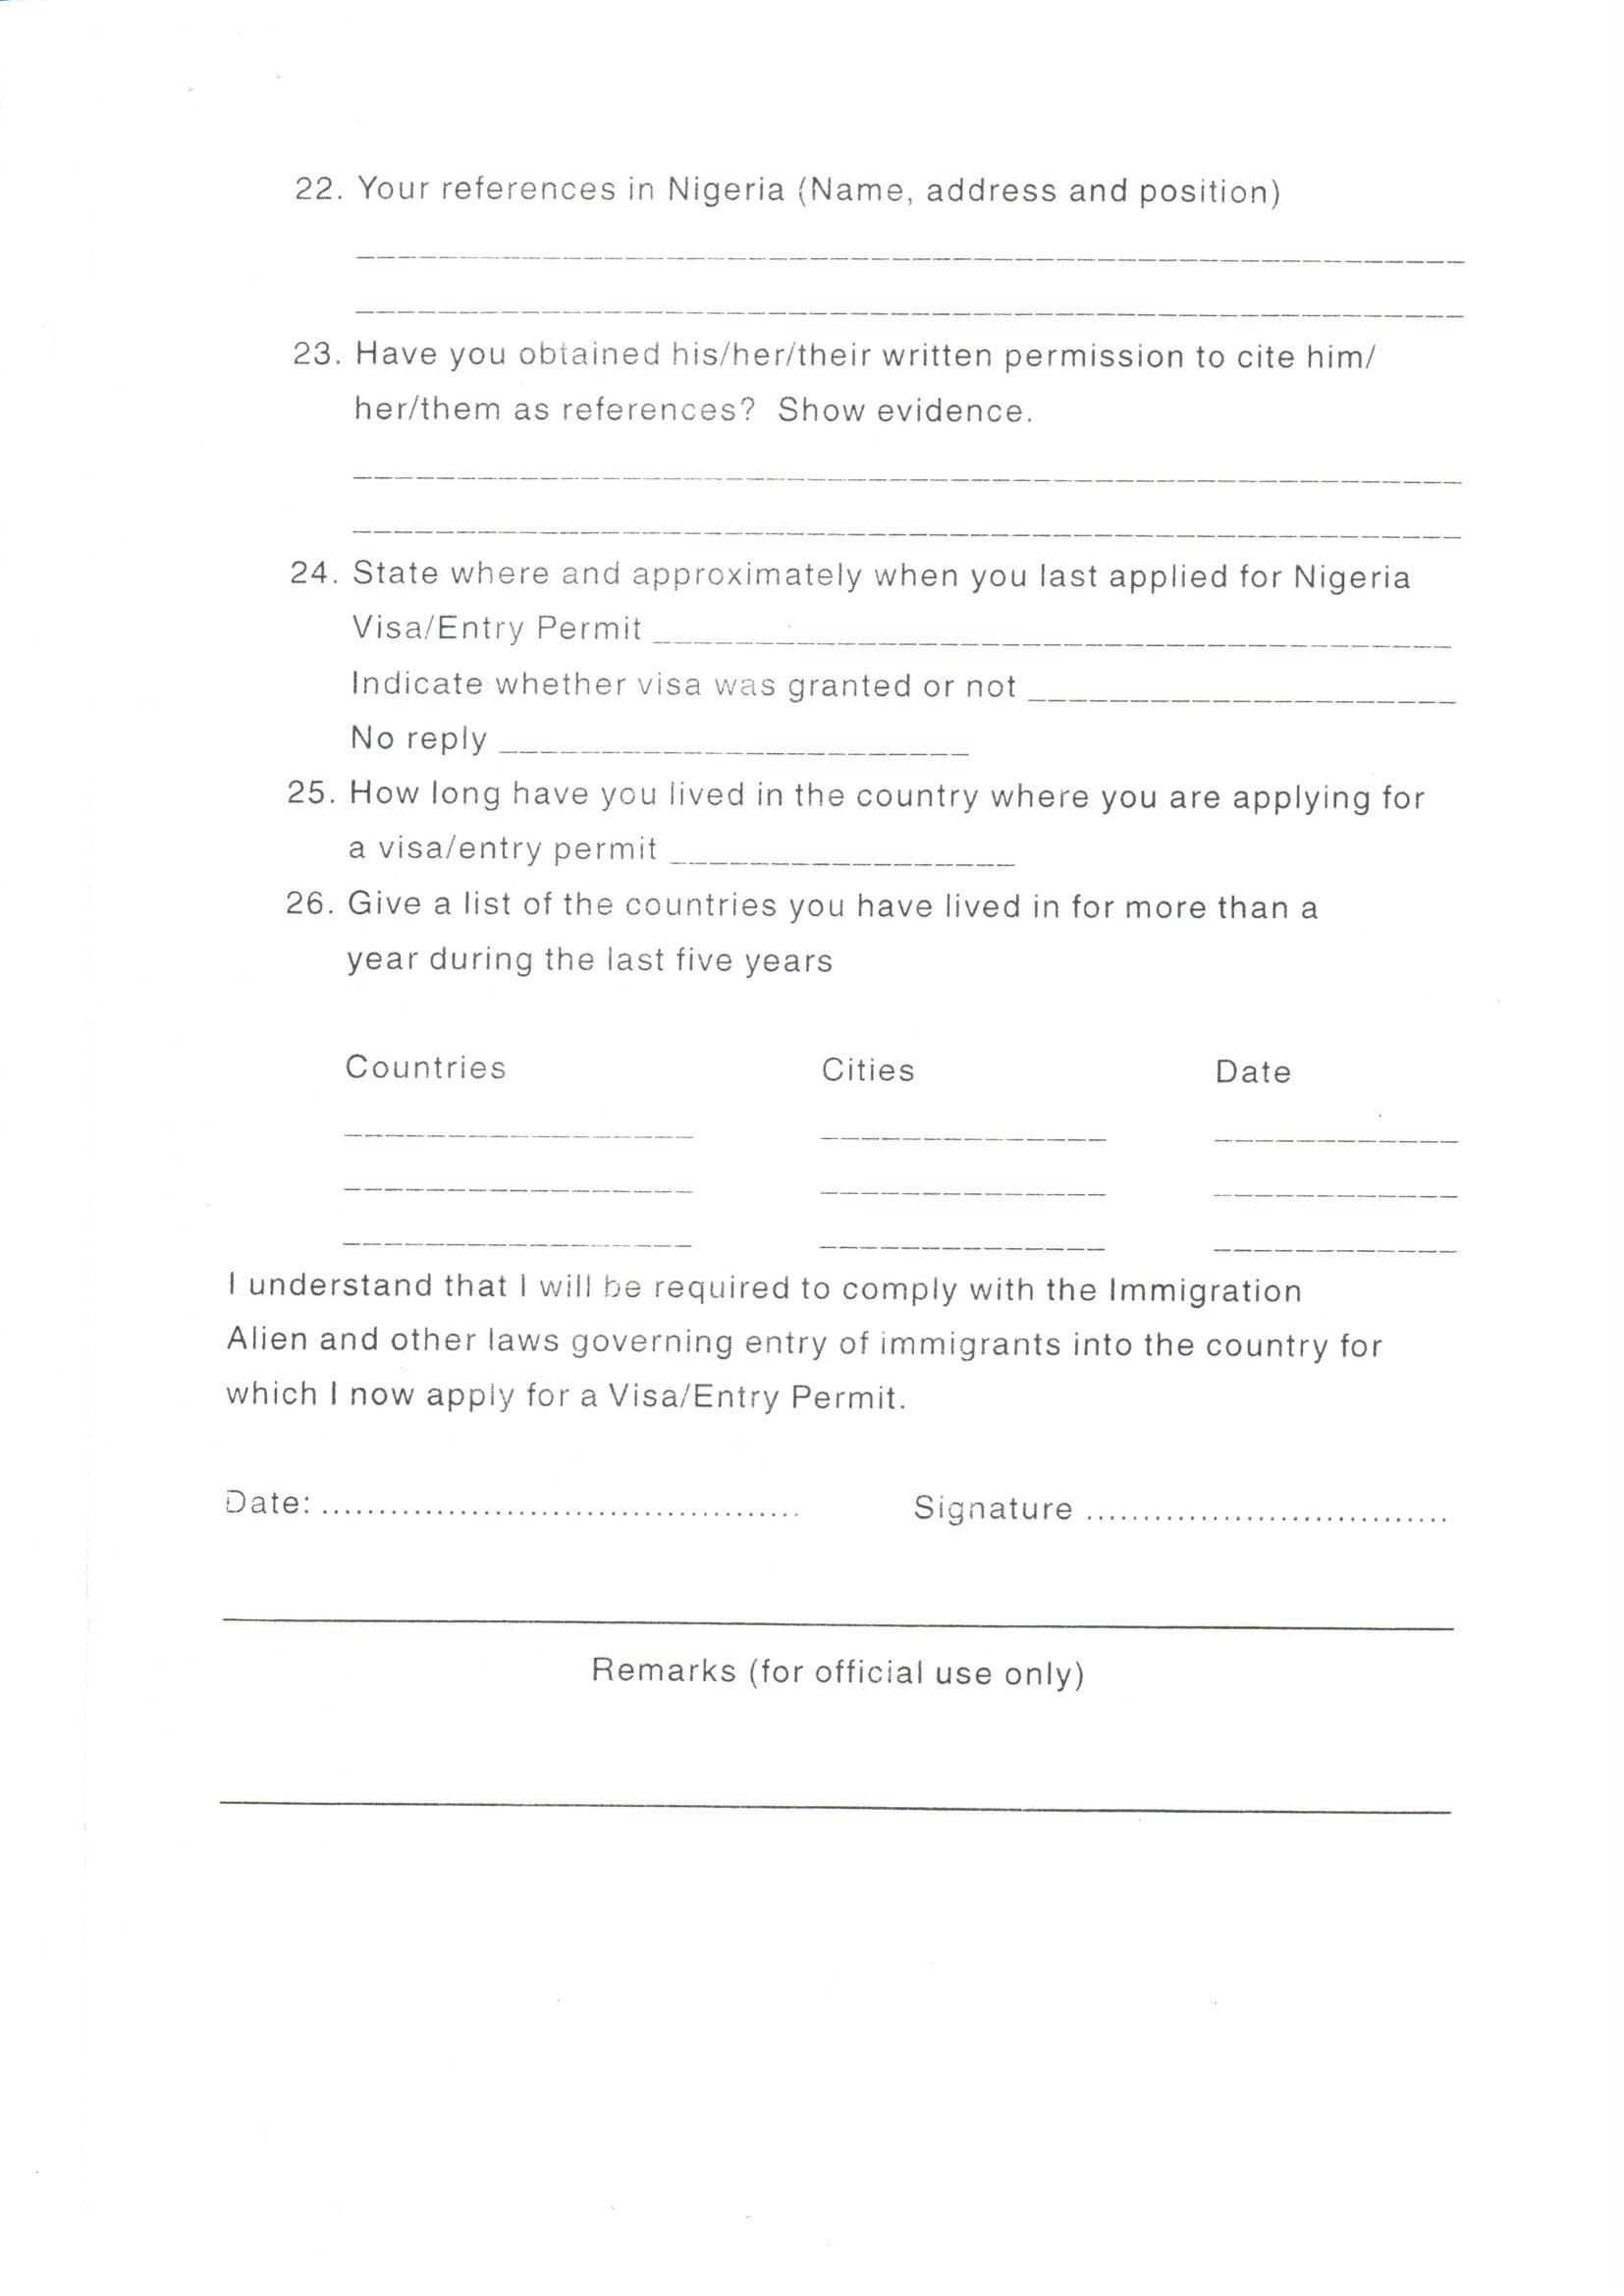 Indian Visa Application Form In Lagos Nigeria